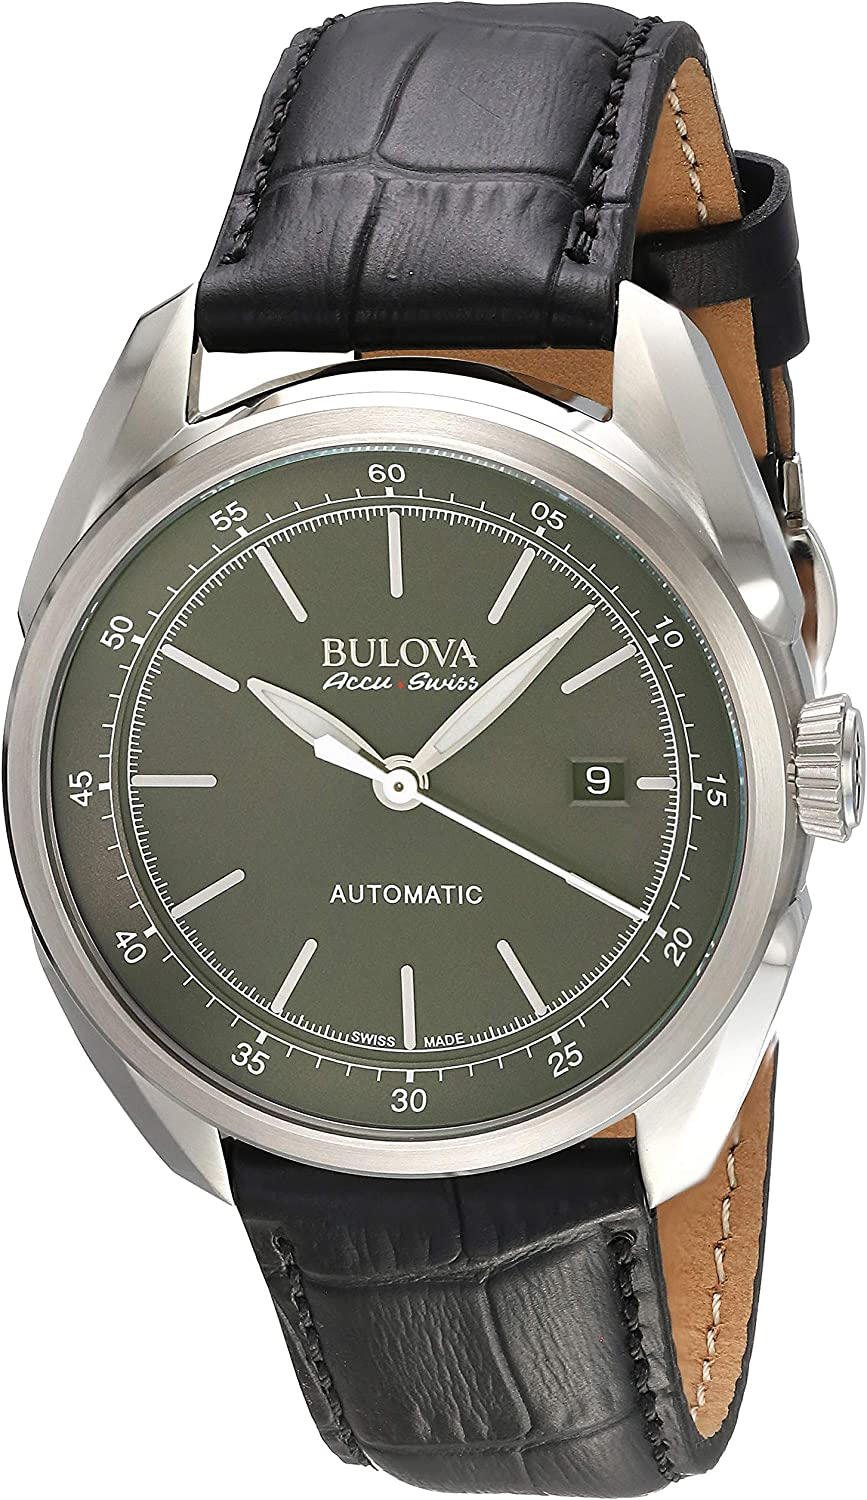 Bulova Men s Stainless Steel and Black Leather Automatic Watch Model 63B188